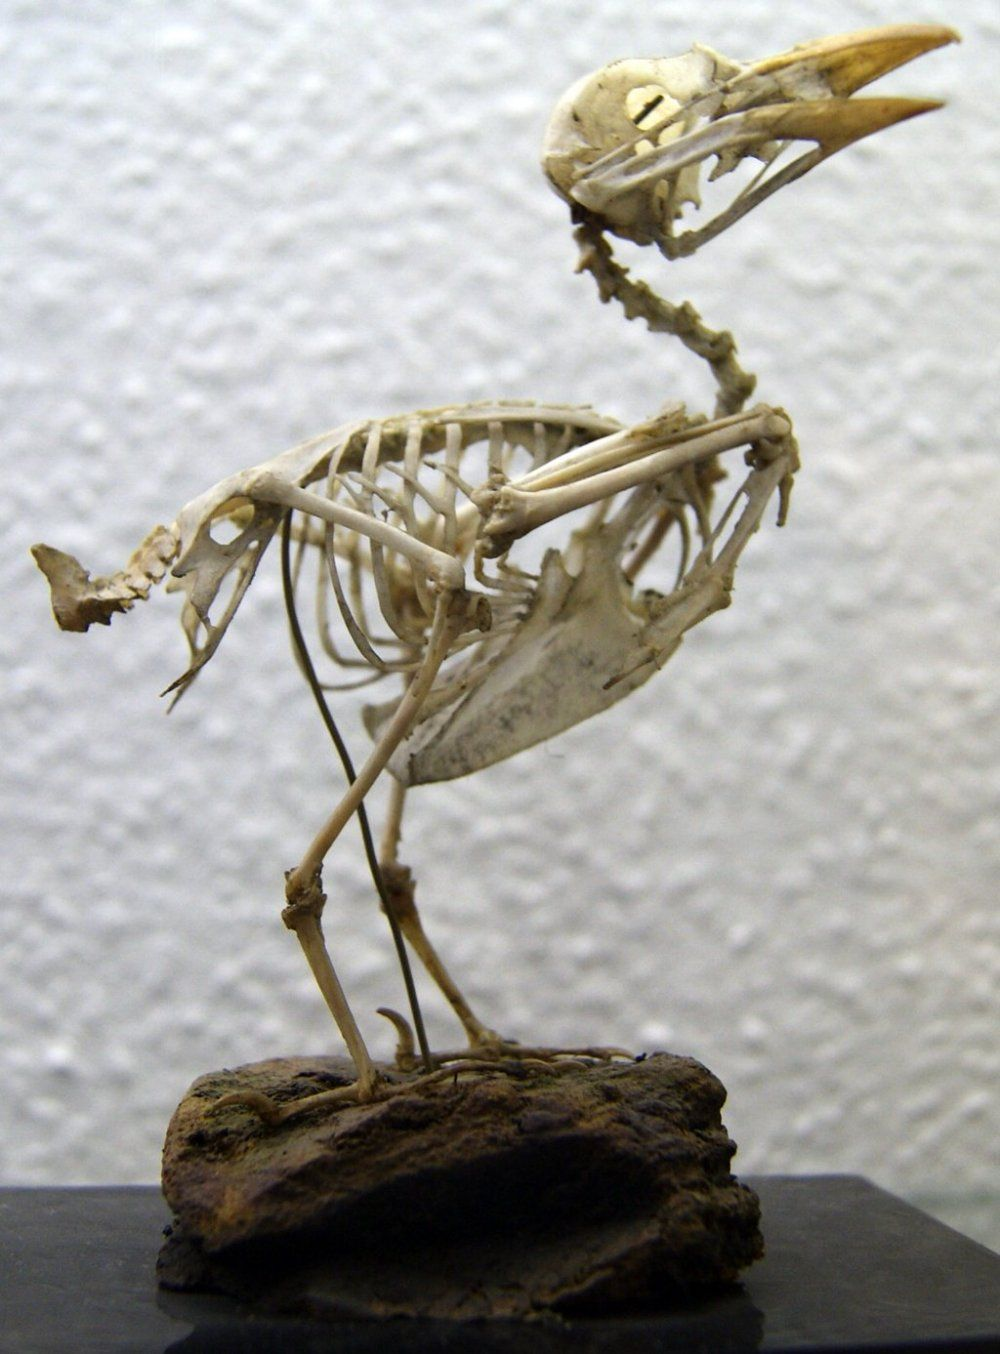 Skeleton of a Seagull | Animal Skeletons | Pinterest